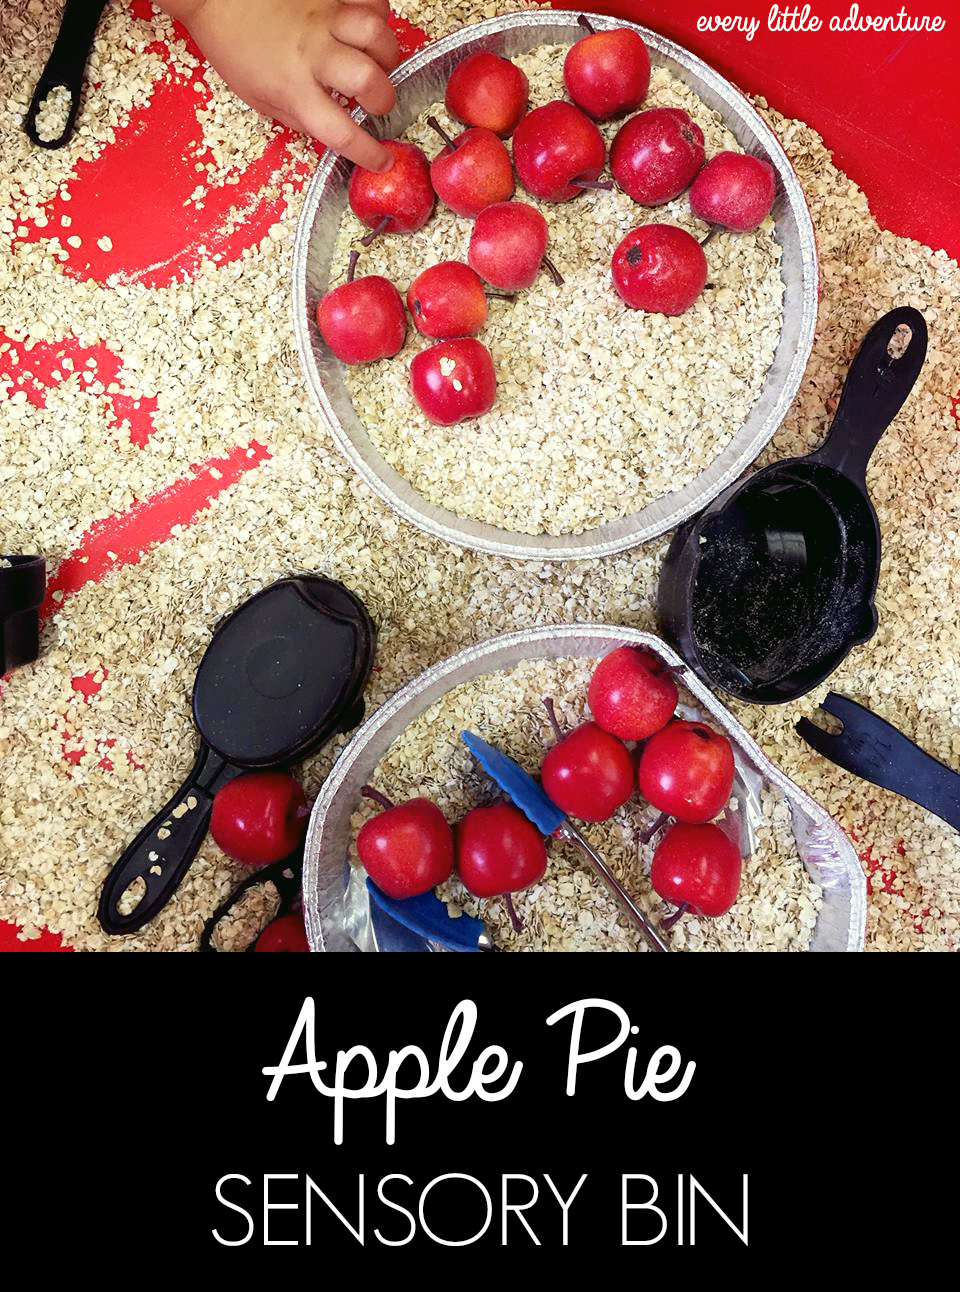 Apple pie oats sensory bin